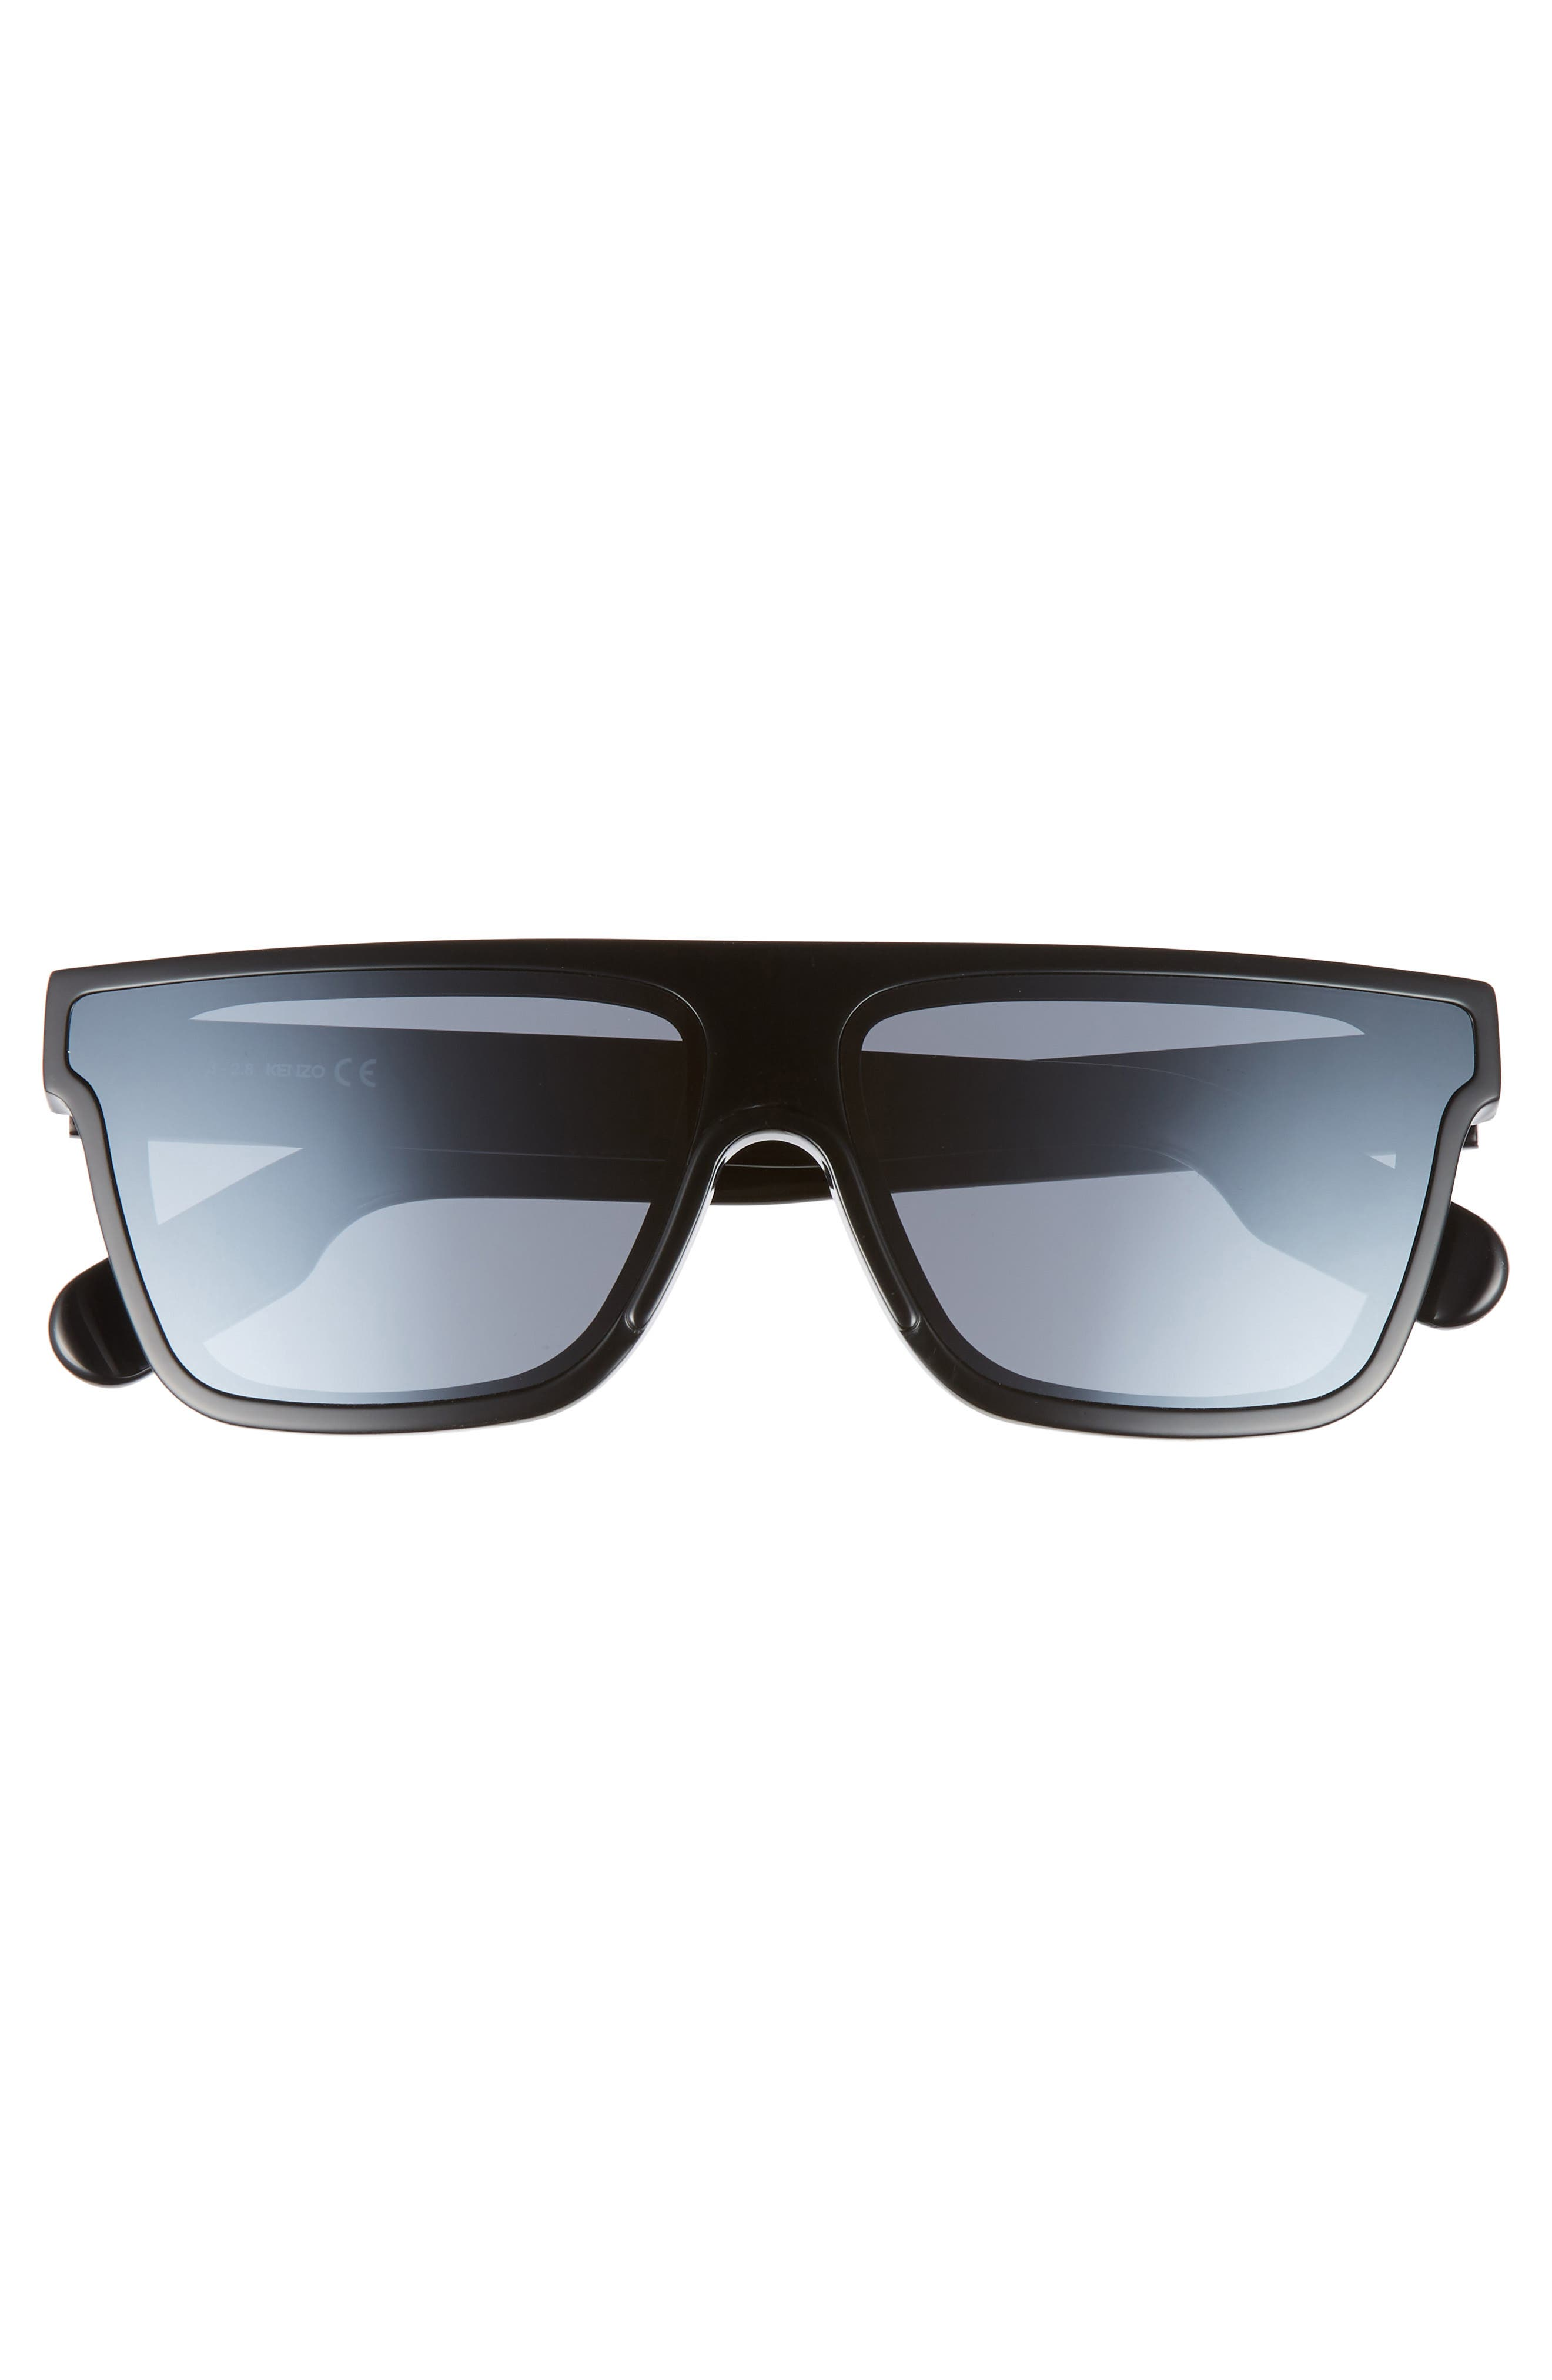 ,                             67mm Special Fit Oversize Flat Top Sunglasses,                             Alternate thumbnail 3, color,                             SHINY BLACK/ SMOKE MIRROR